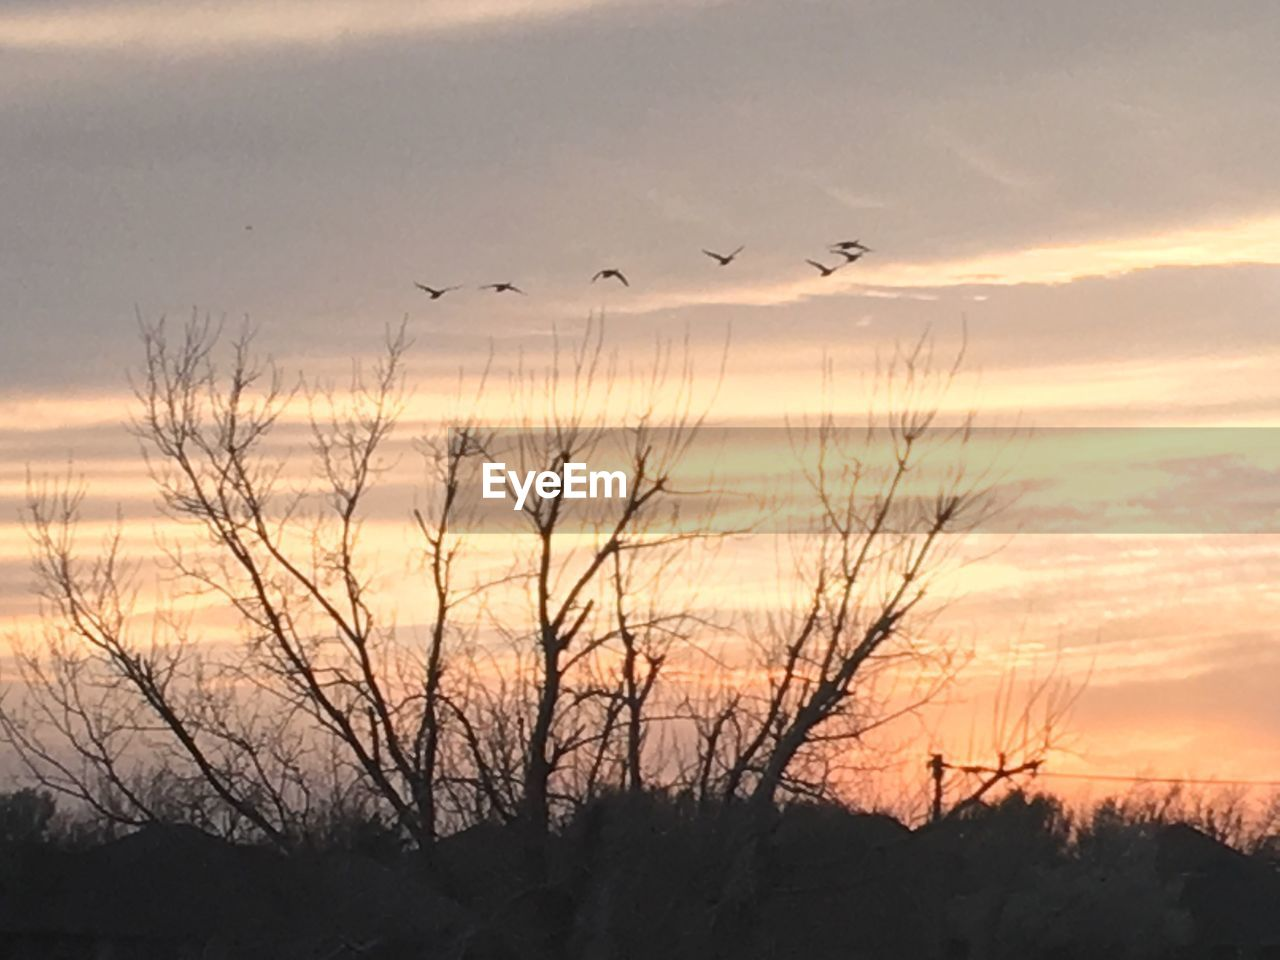 sunset, flying, bird, silhouette, nature, beauty in nature, sky, animals in the wild, animal themes, tranquil scene, scenics, animal wildlife, no people, tranquility, outdoors, cloud - sky, mid-air, flock of birds, water, spread wings, tree, day